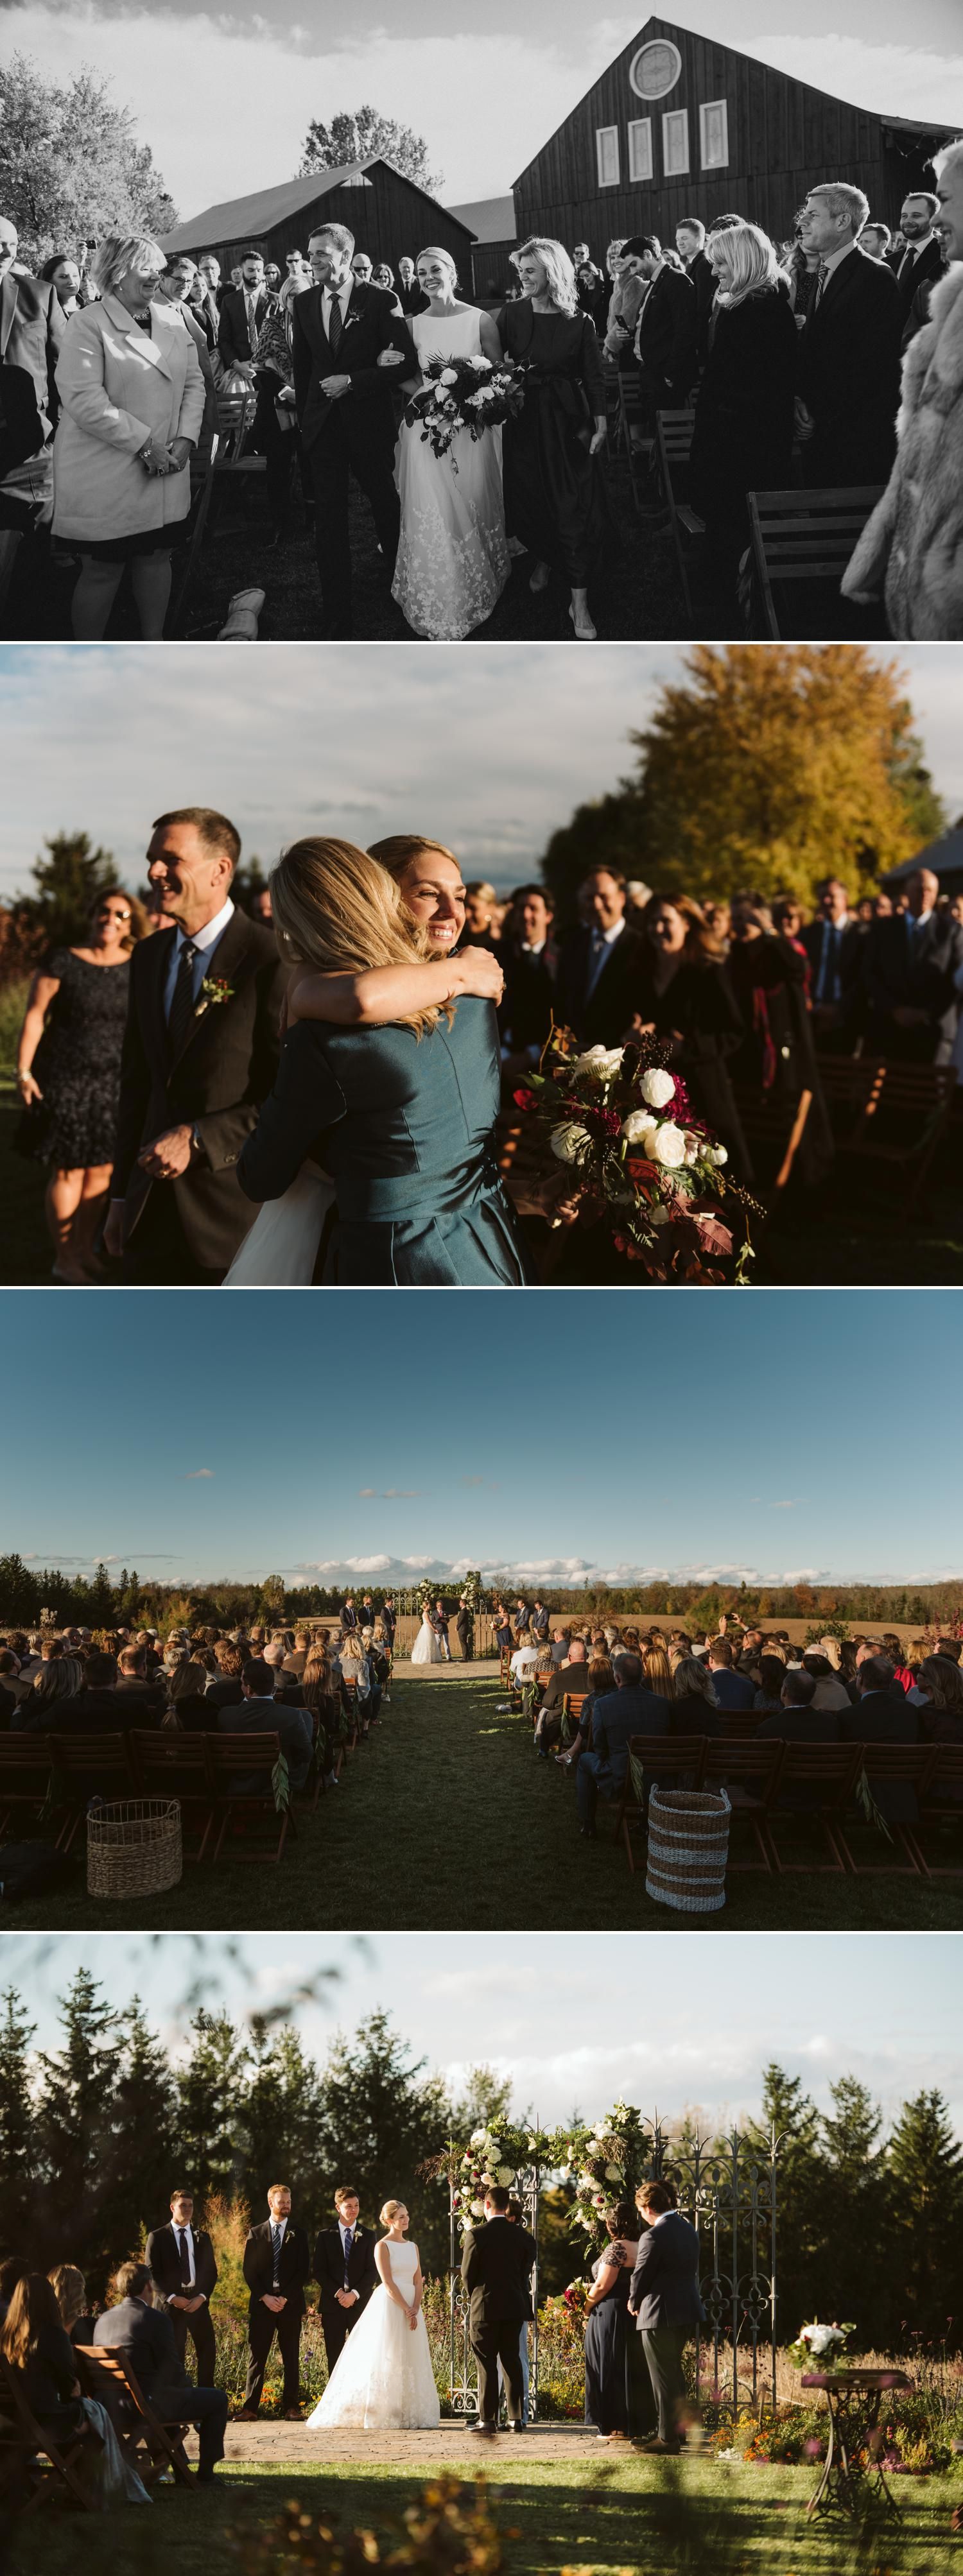 Wedding ceremony at evermore events in almonte ontario